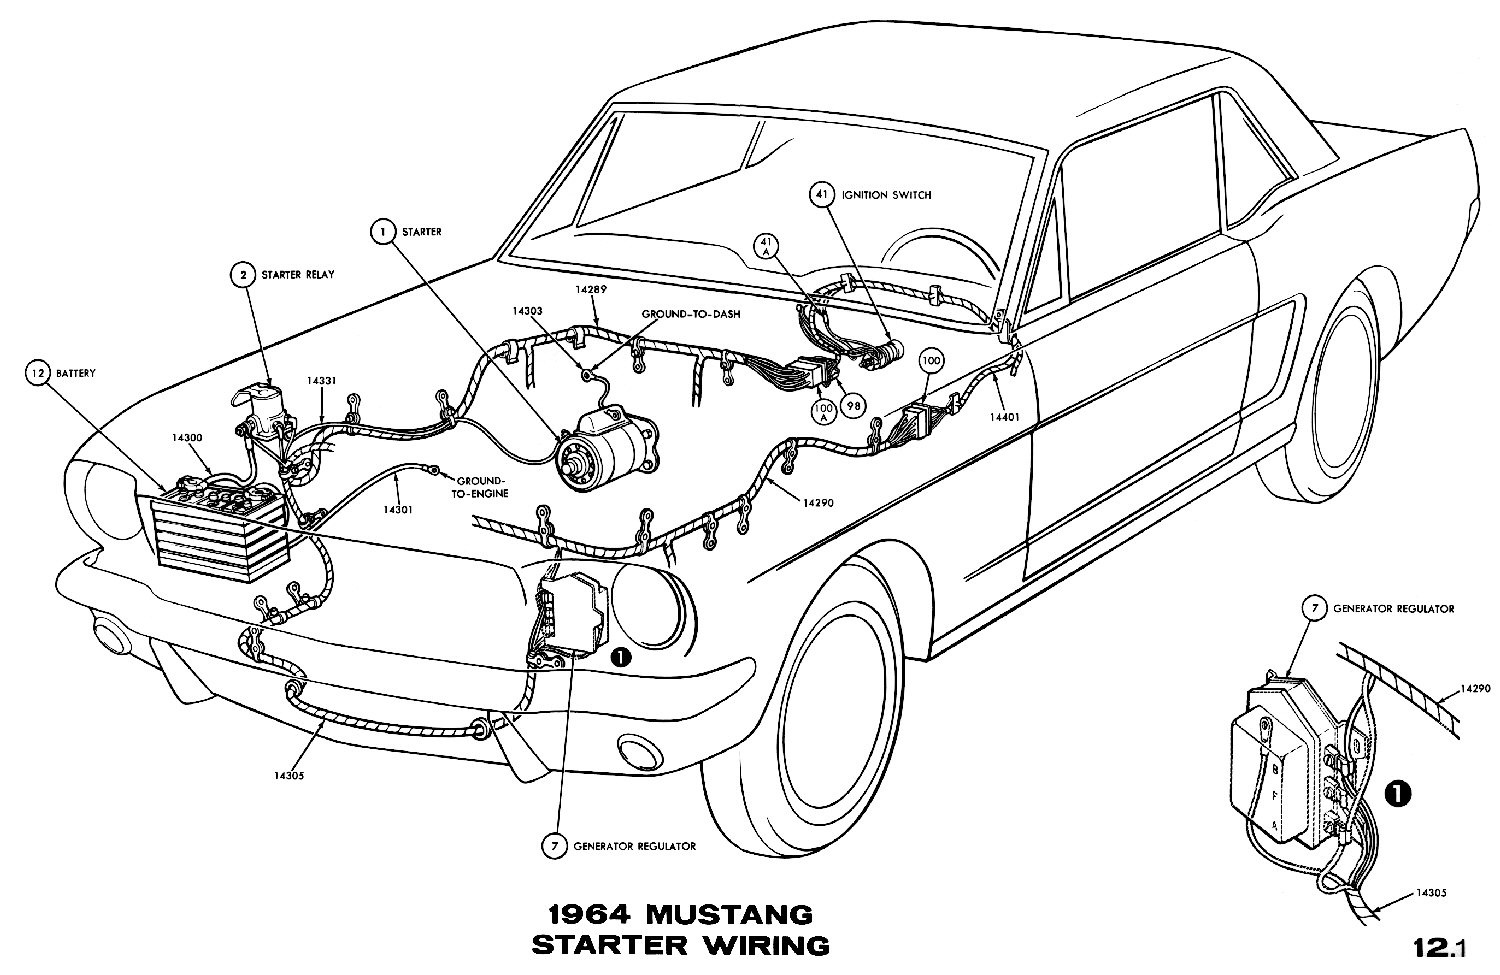 1964 Mustang Wiring Diagrams Average Joe Restoration Starter Alternator Diagram Sm1964d Pictorial Or Schematic